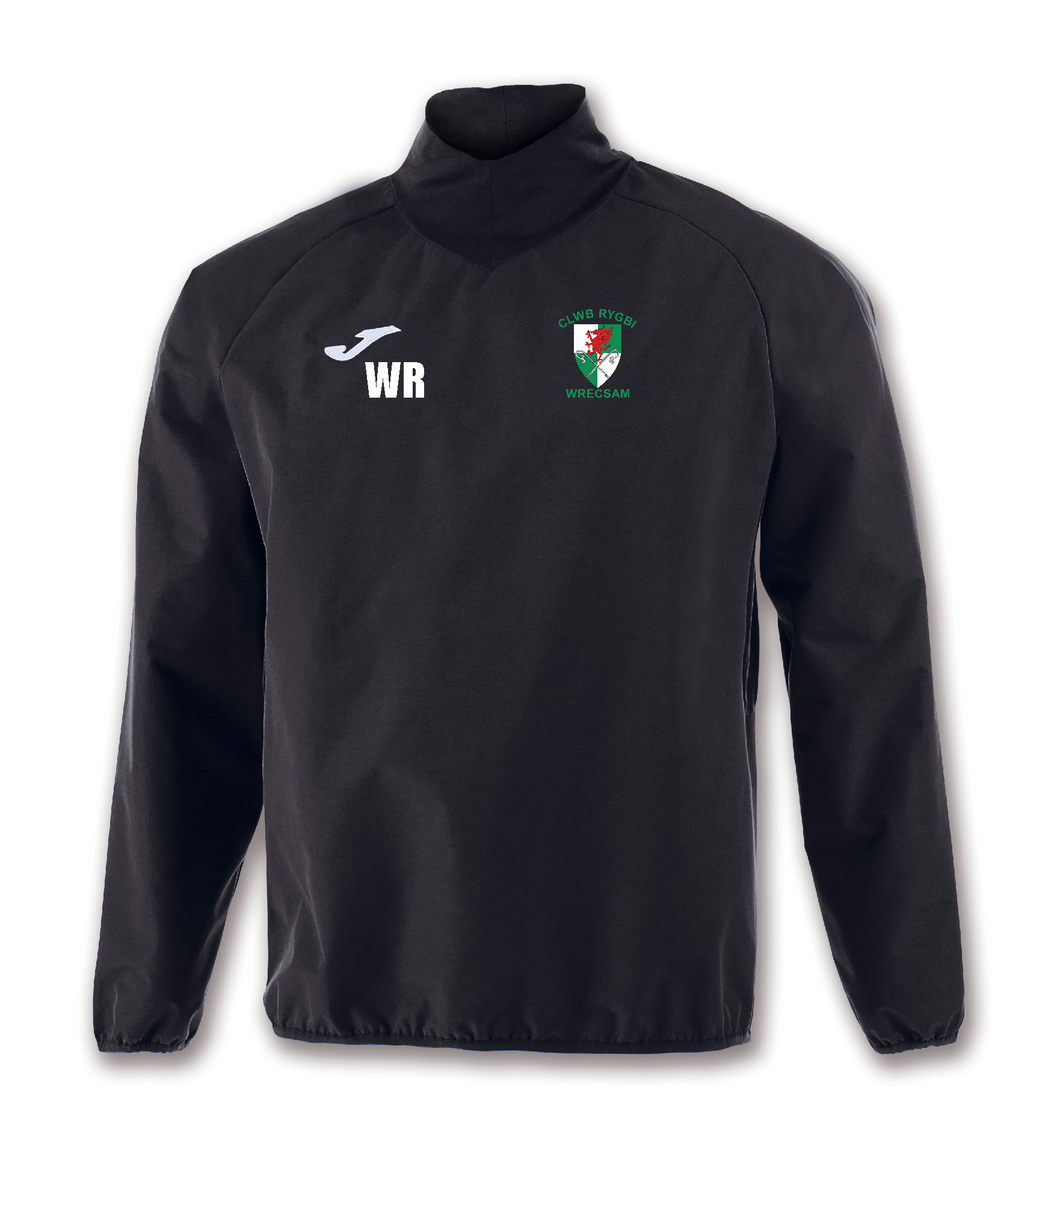 Wrexham RUFC Heavyweight Waterproof Training Top